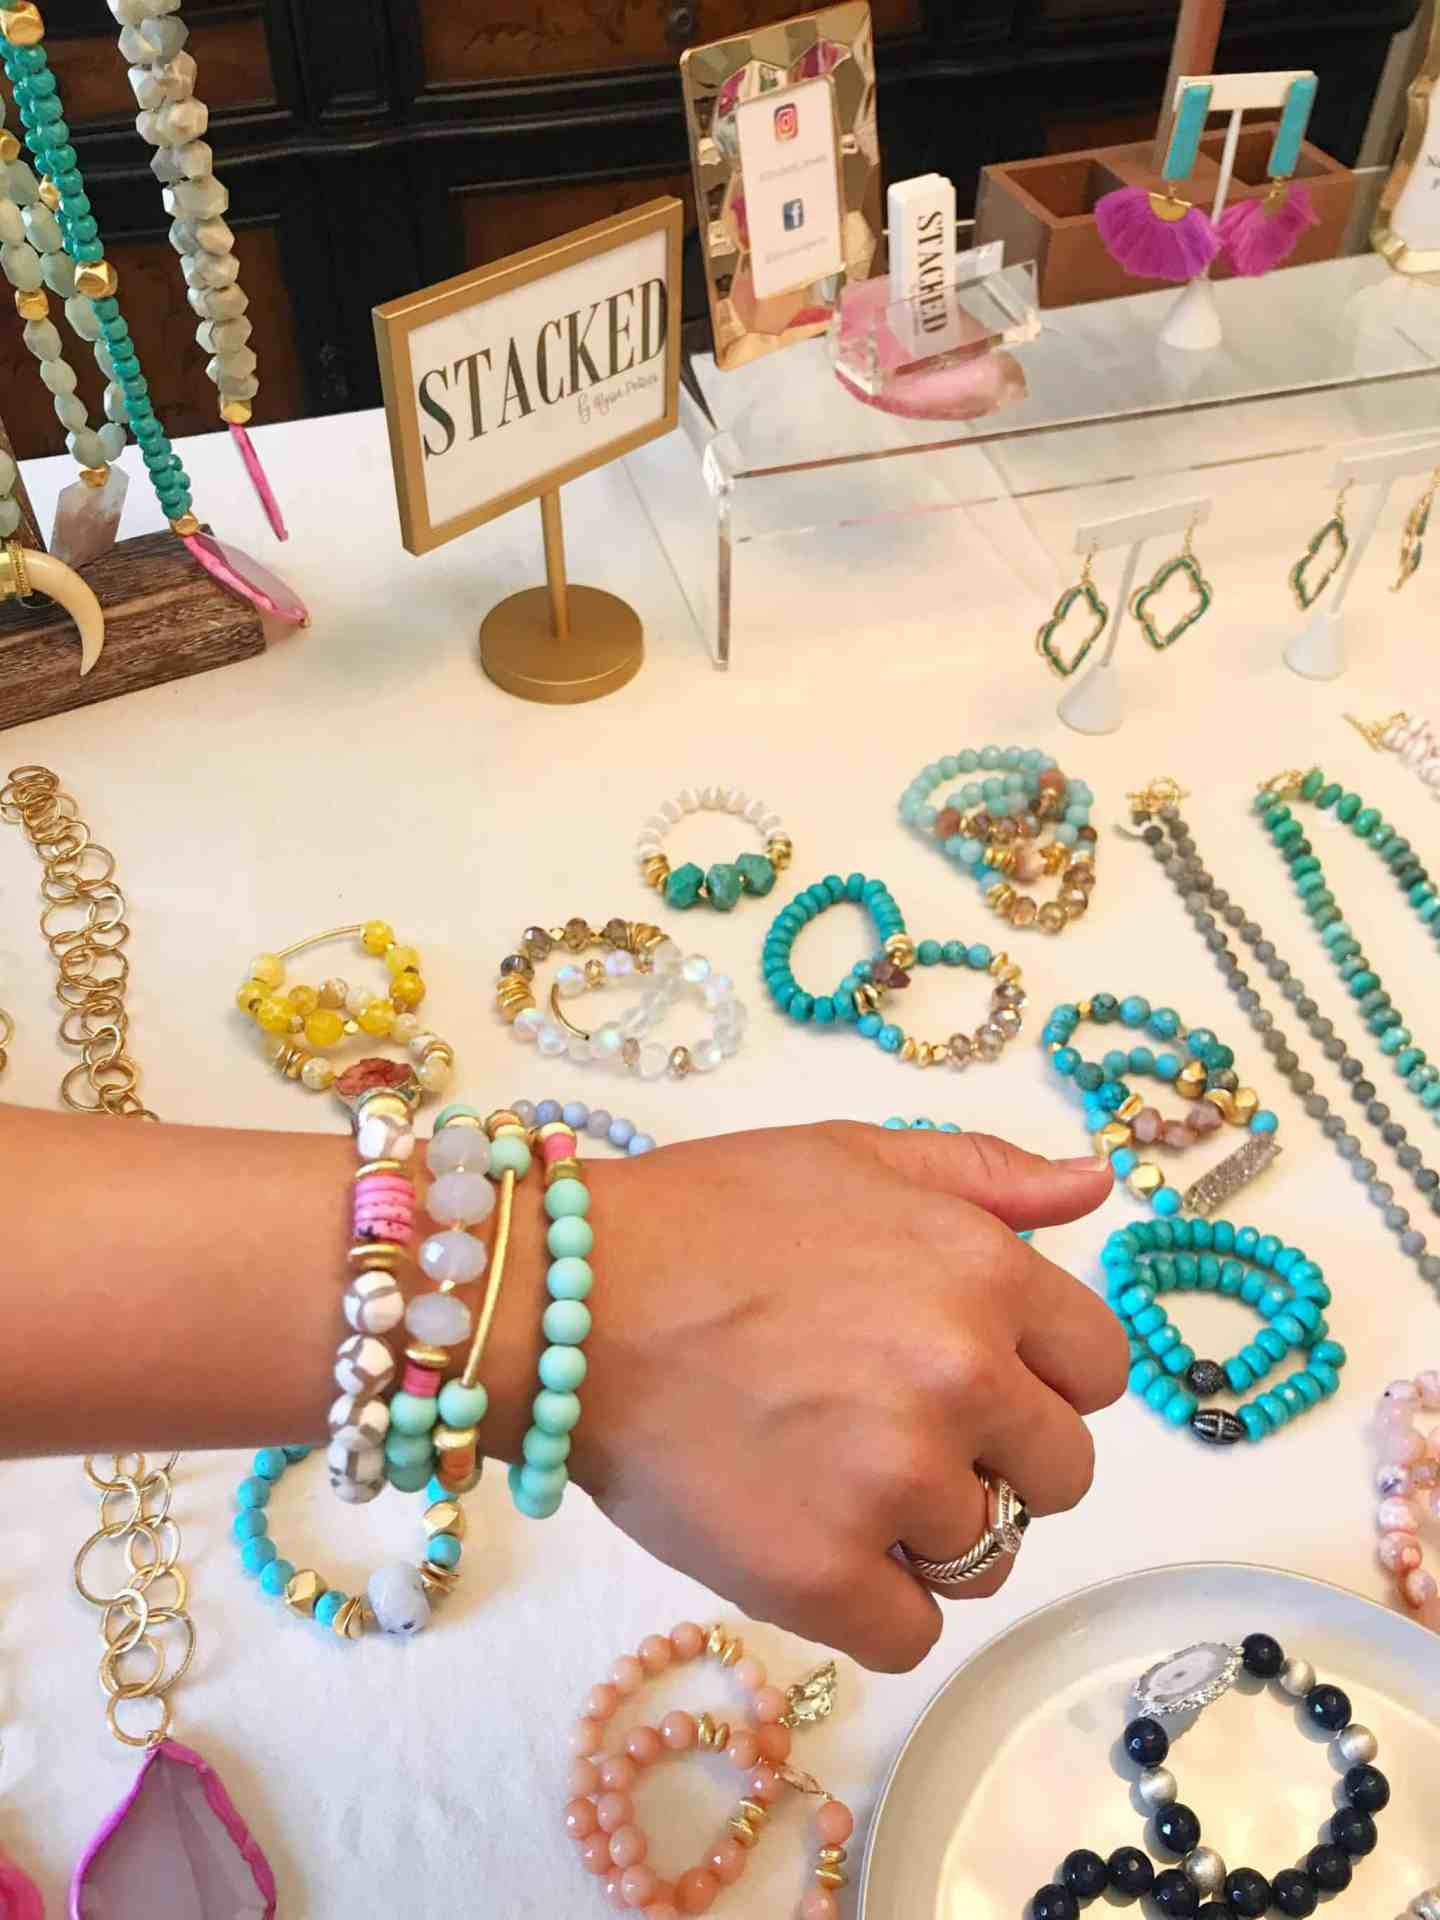 Stacked Jewels